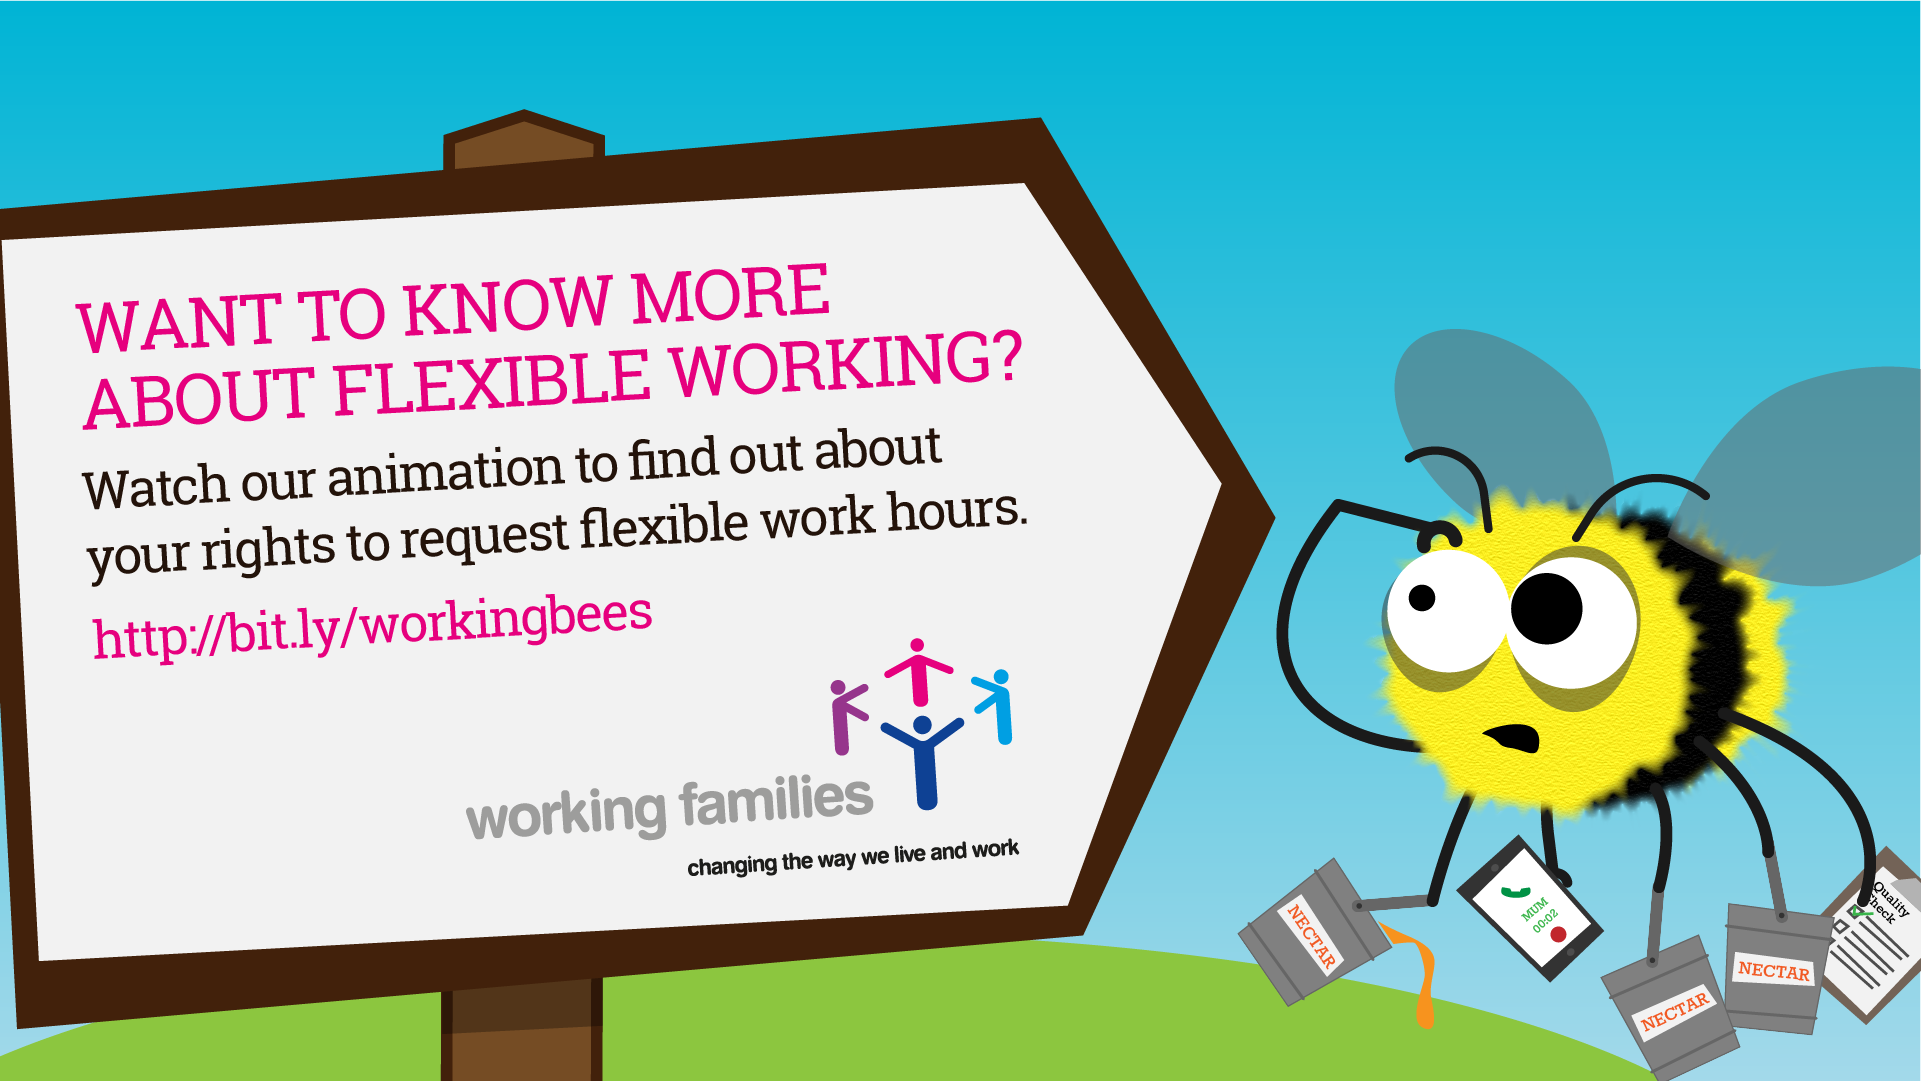 Working Families | How do I ask to change my working hours